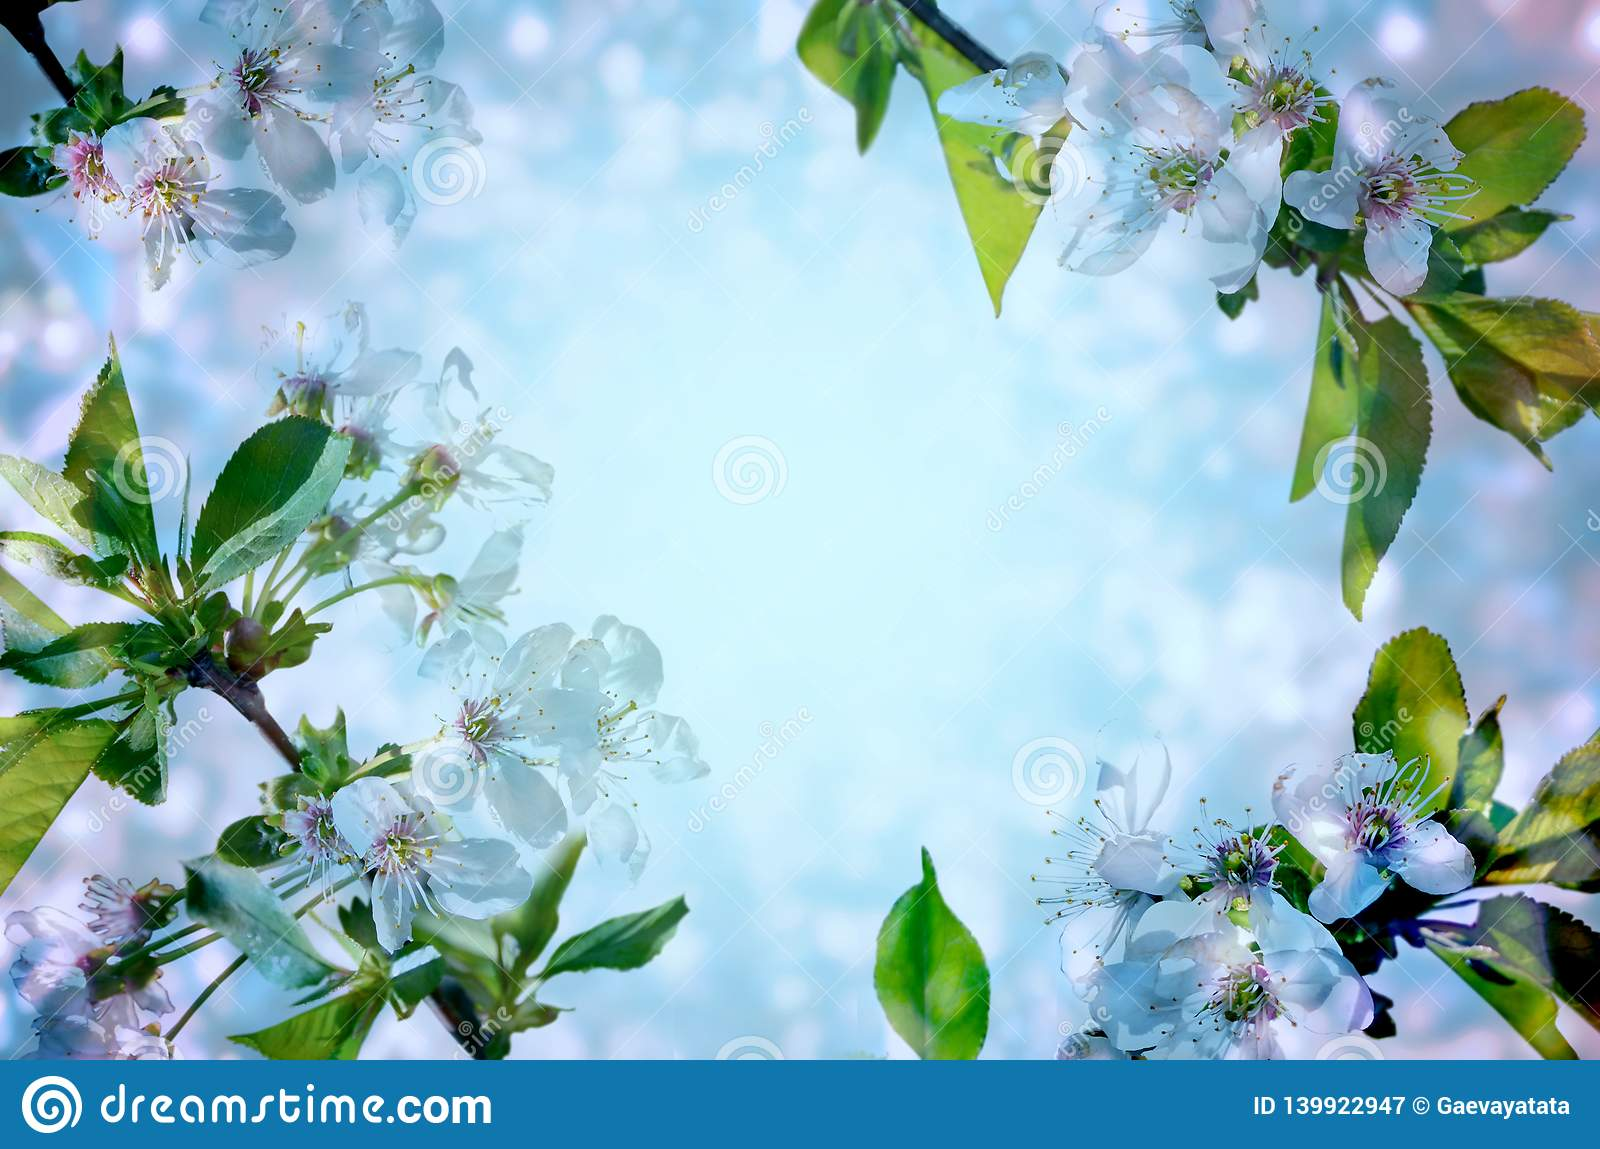 Cherry blossoms over blue background